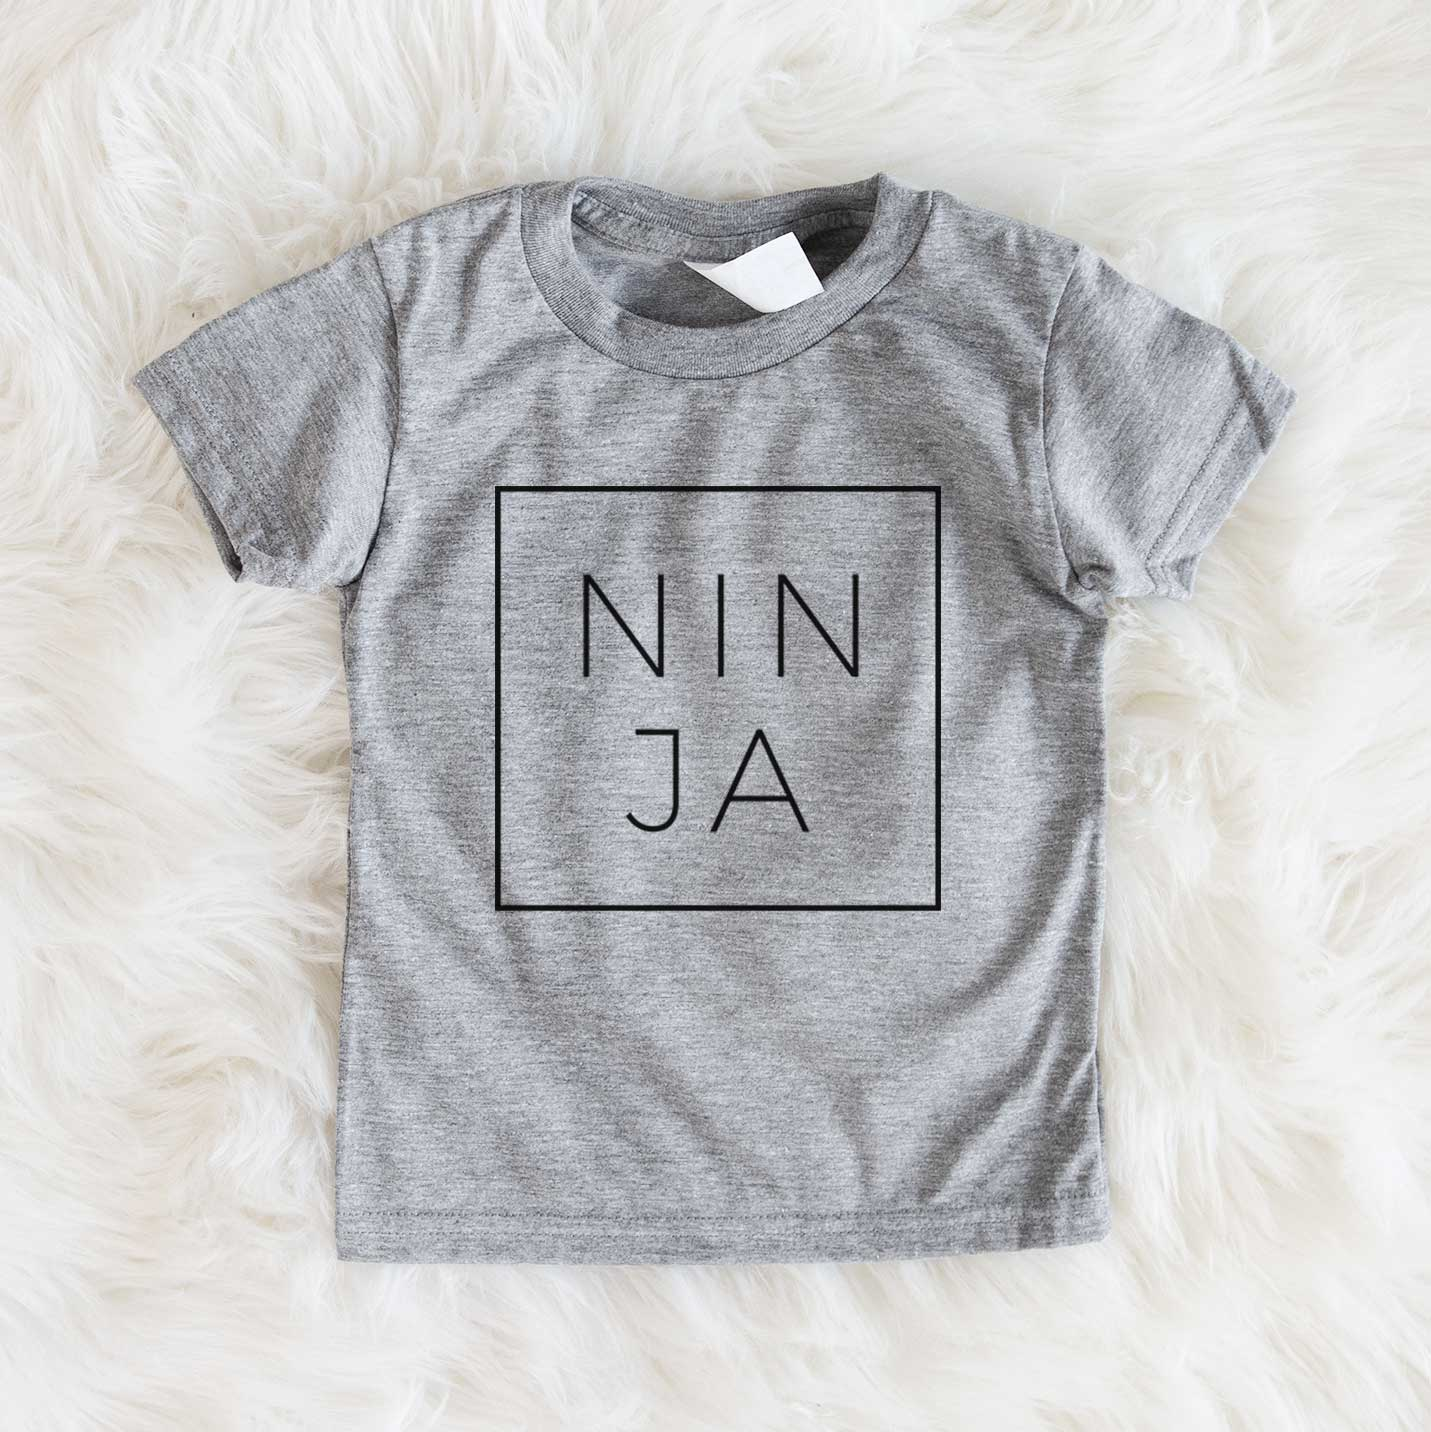 Ninja Boxed  - Kids/Youth/Toddler Shirt